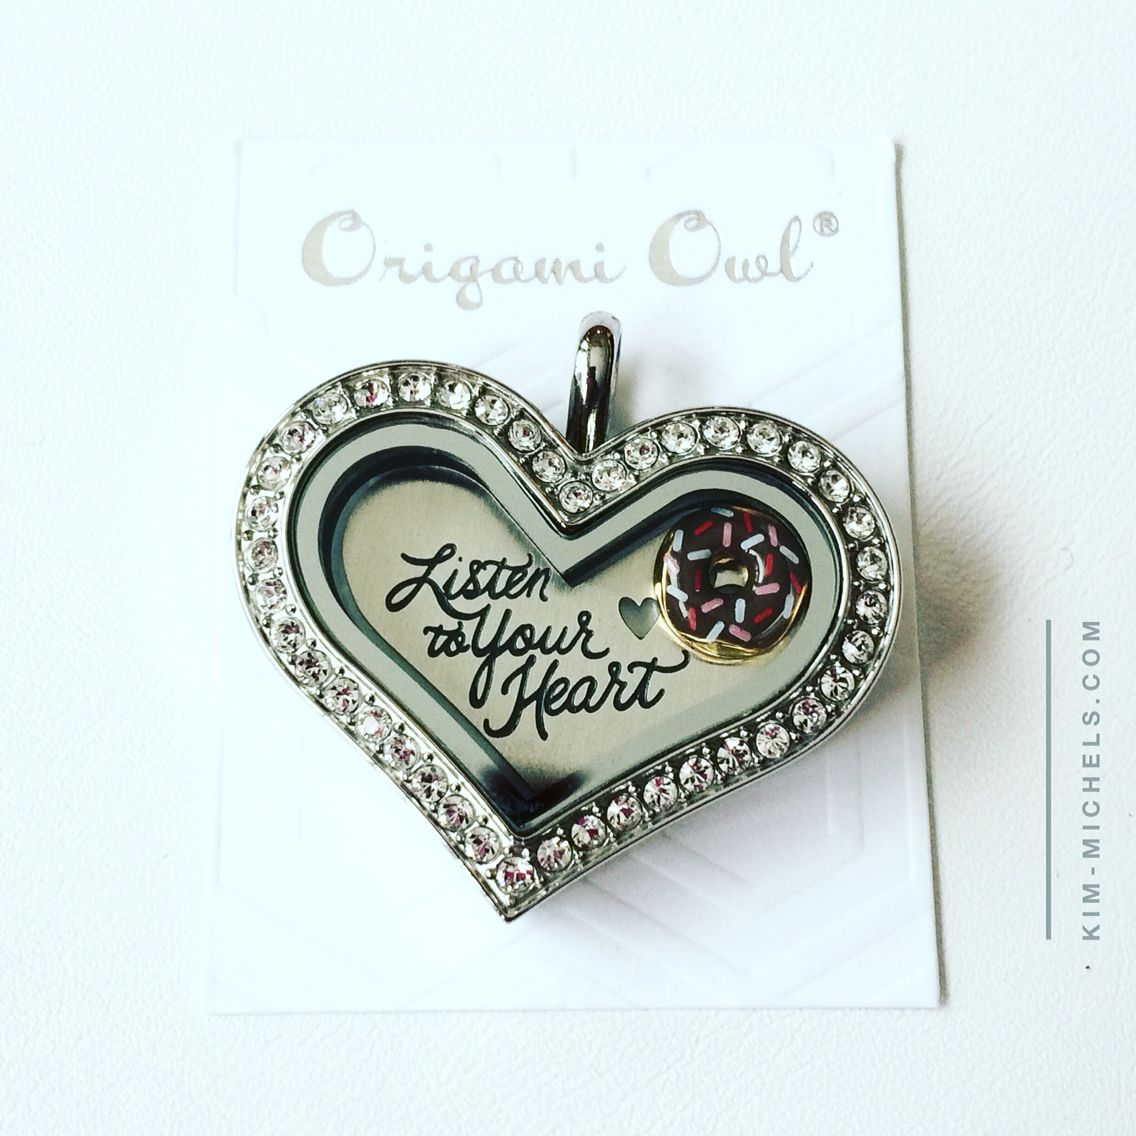 Listen to your heart have the chocolate donut lol origami owl listen to your heart have the chocolate donut lol origami owl jeuxipadfo Images